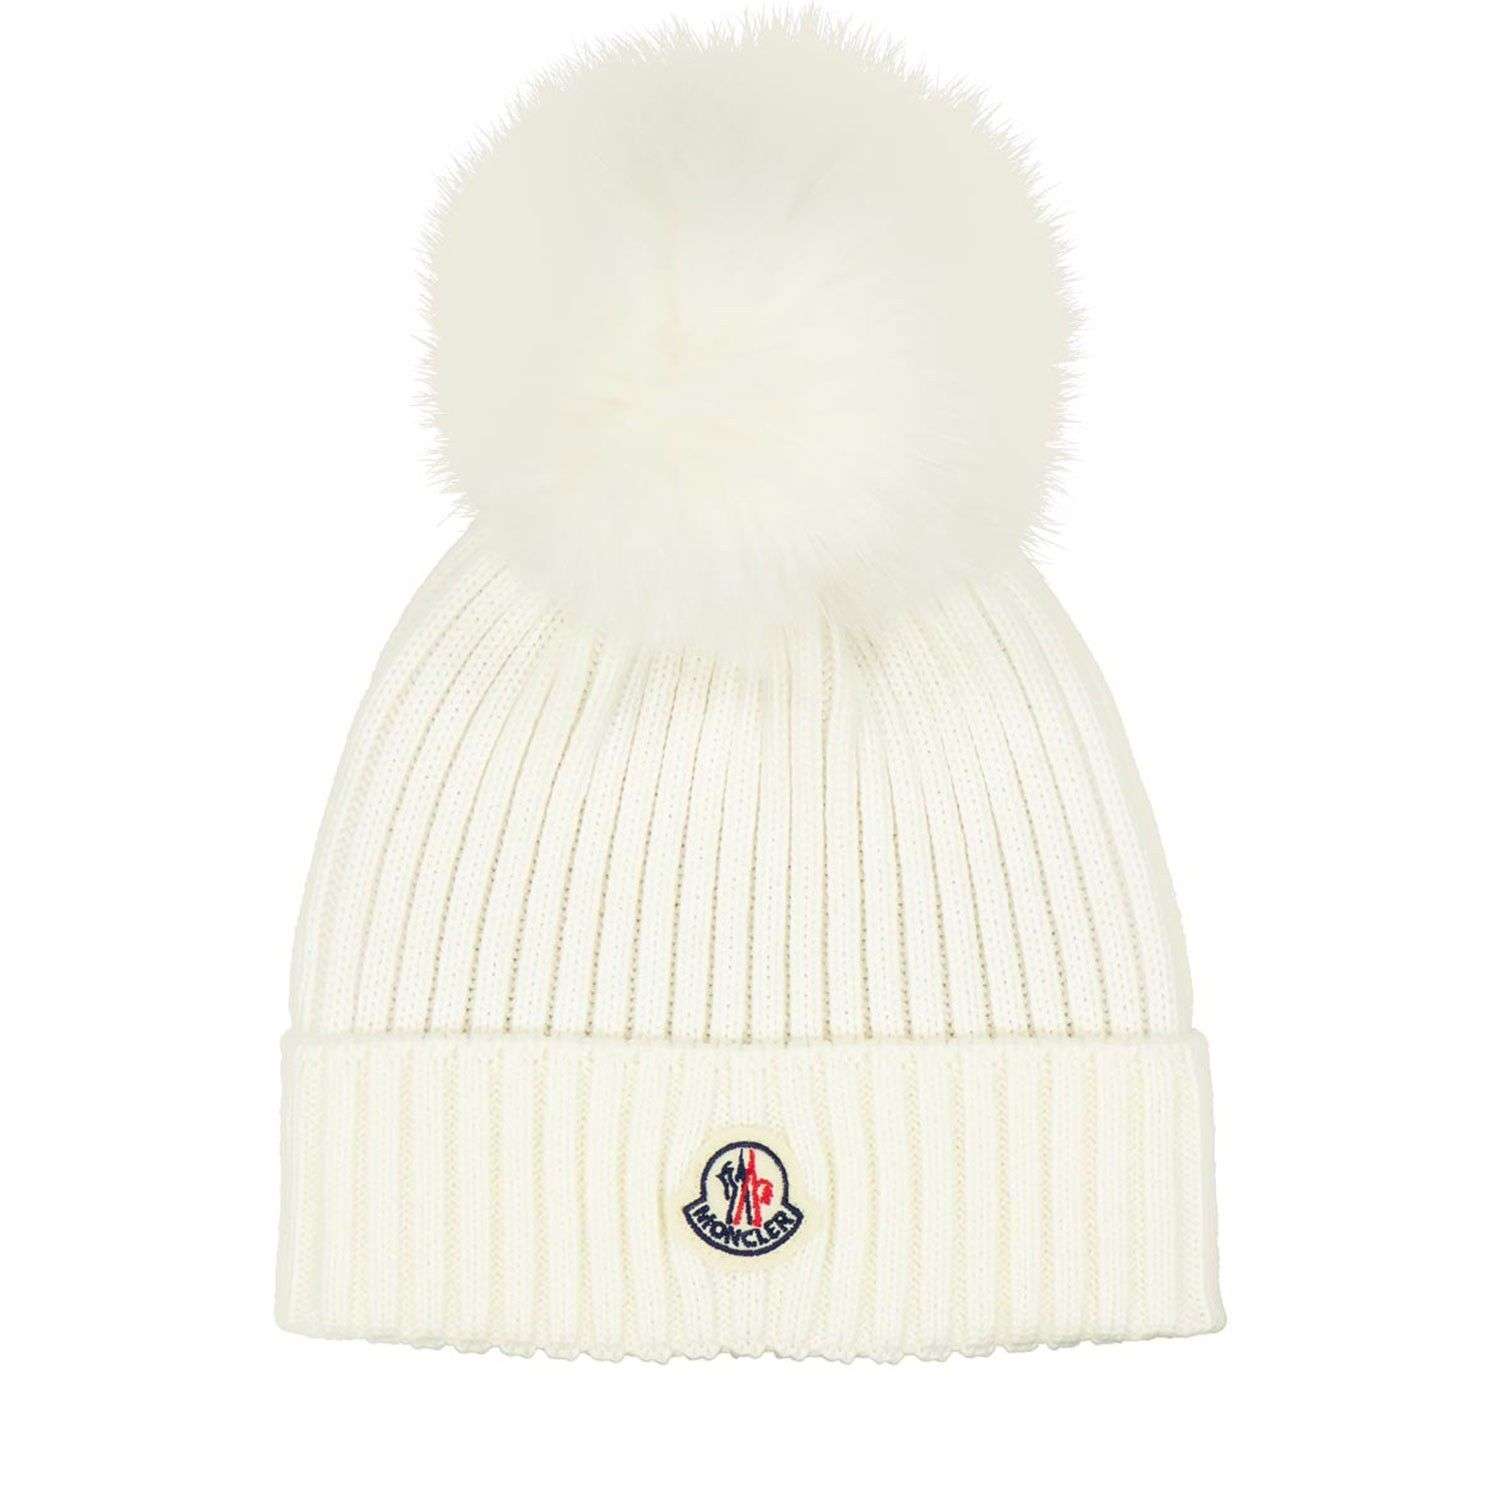 Picture of Moncler 3B71311 kids hat off white